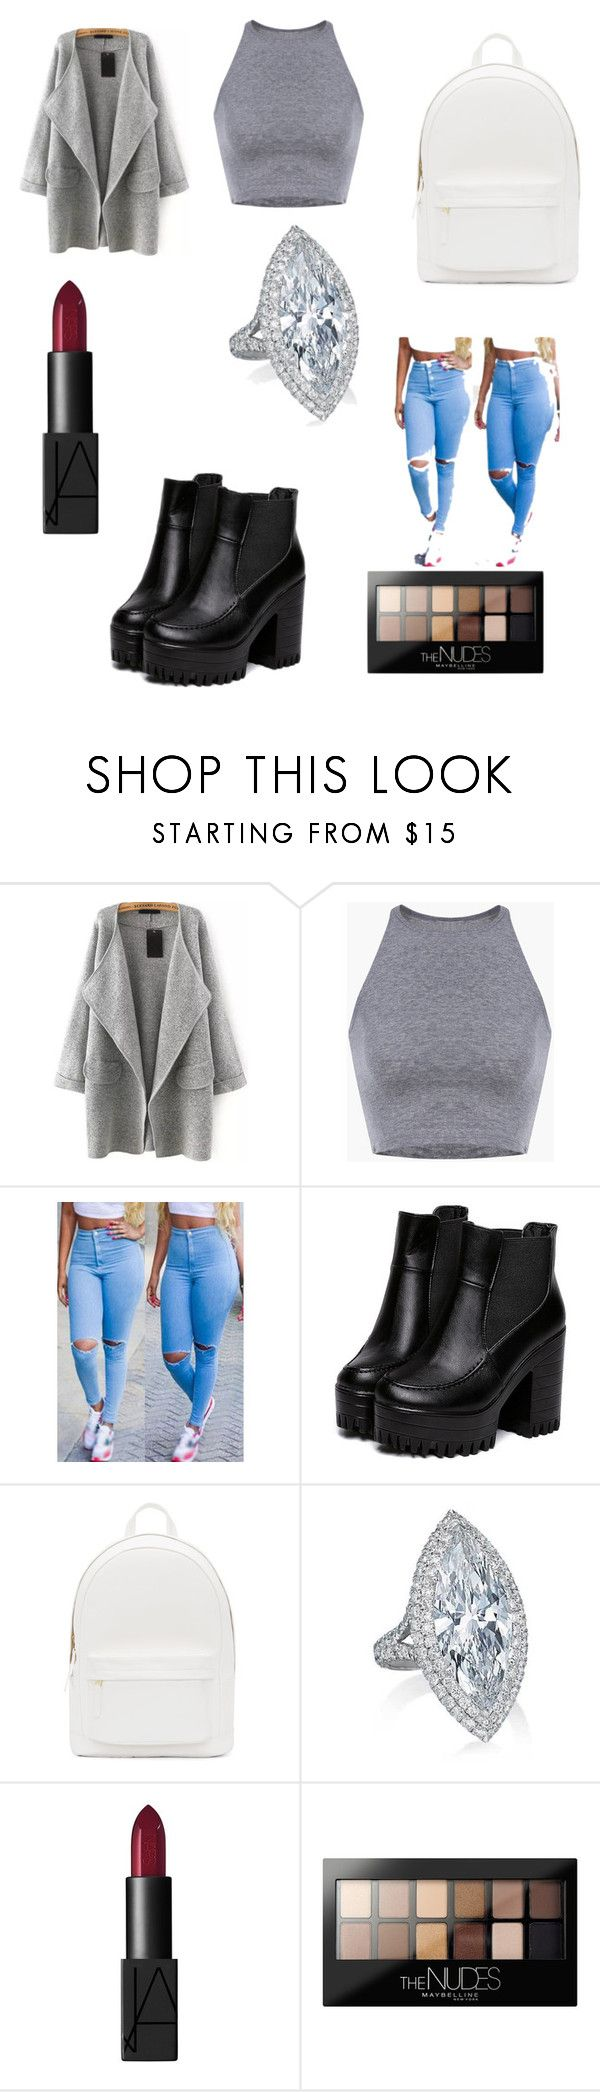 Shirin david winter look by victoriaxkx on Polyvore featuring #EngagementRing from #JRDunn